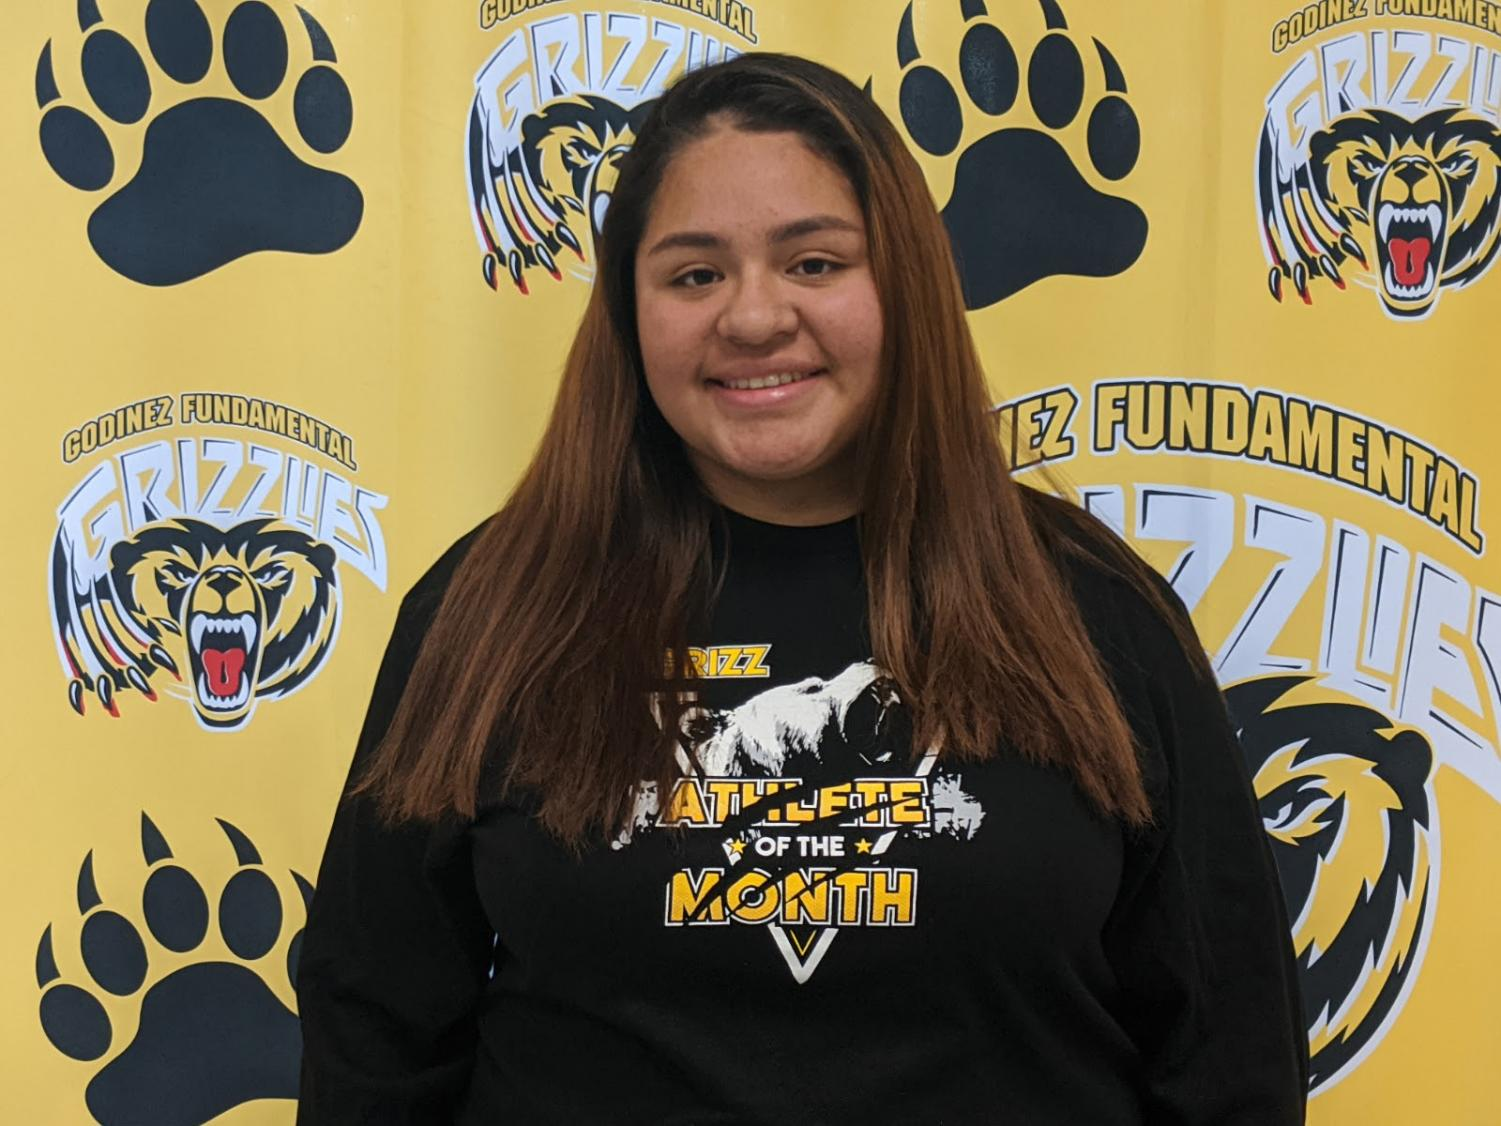 Junior Varsity Water Polo Captain, Idaly Ramirez has earned her spot as one of January's Athletes of the month.